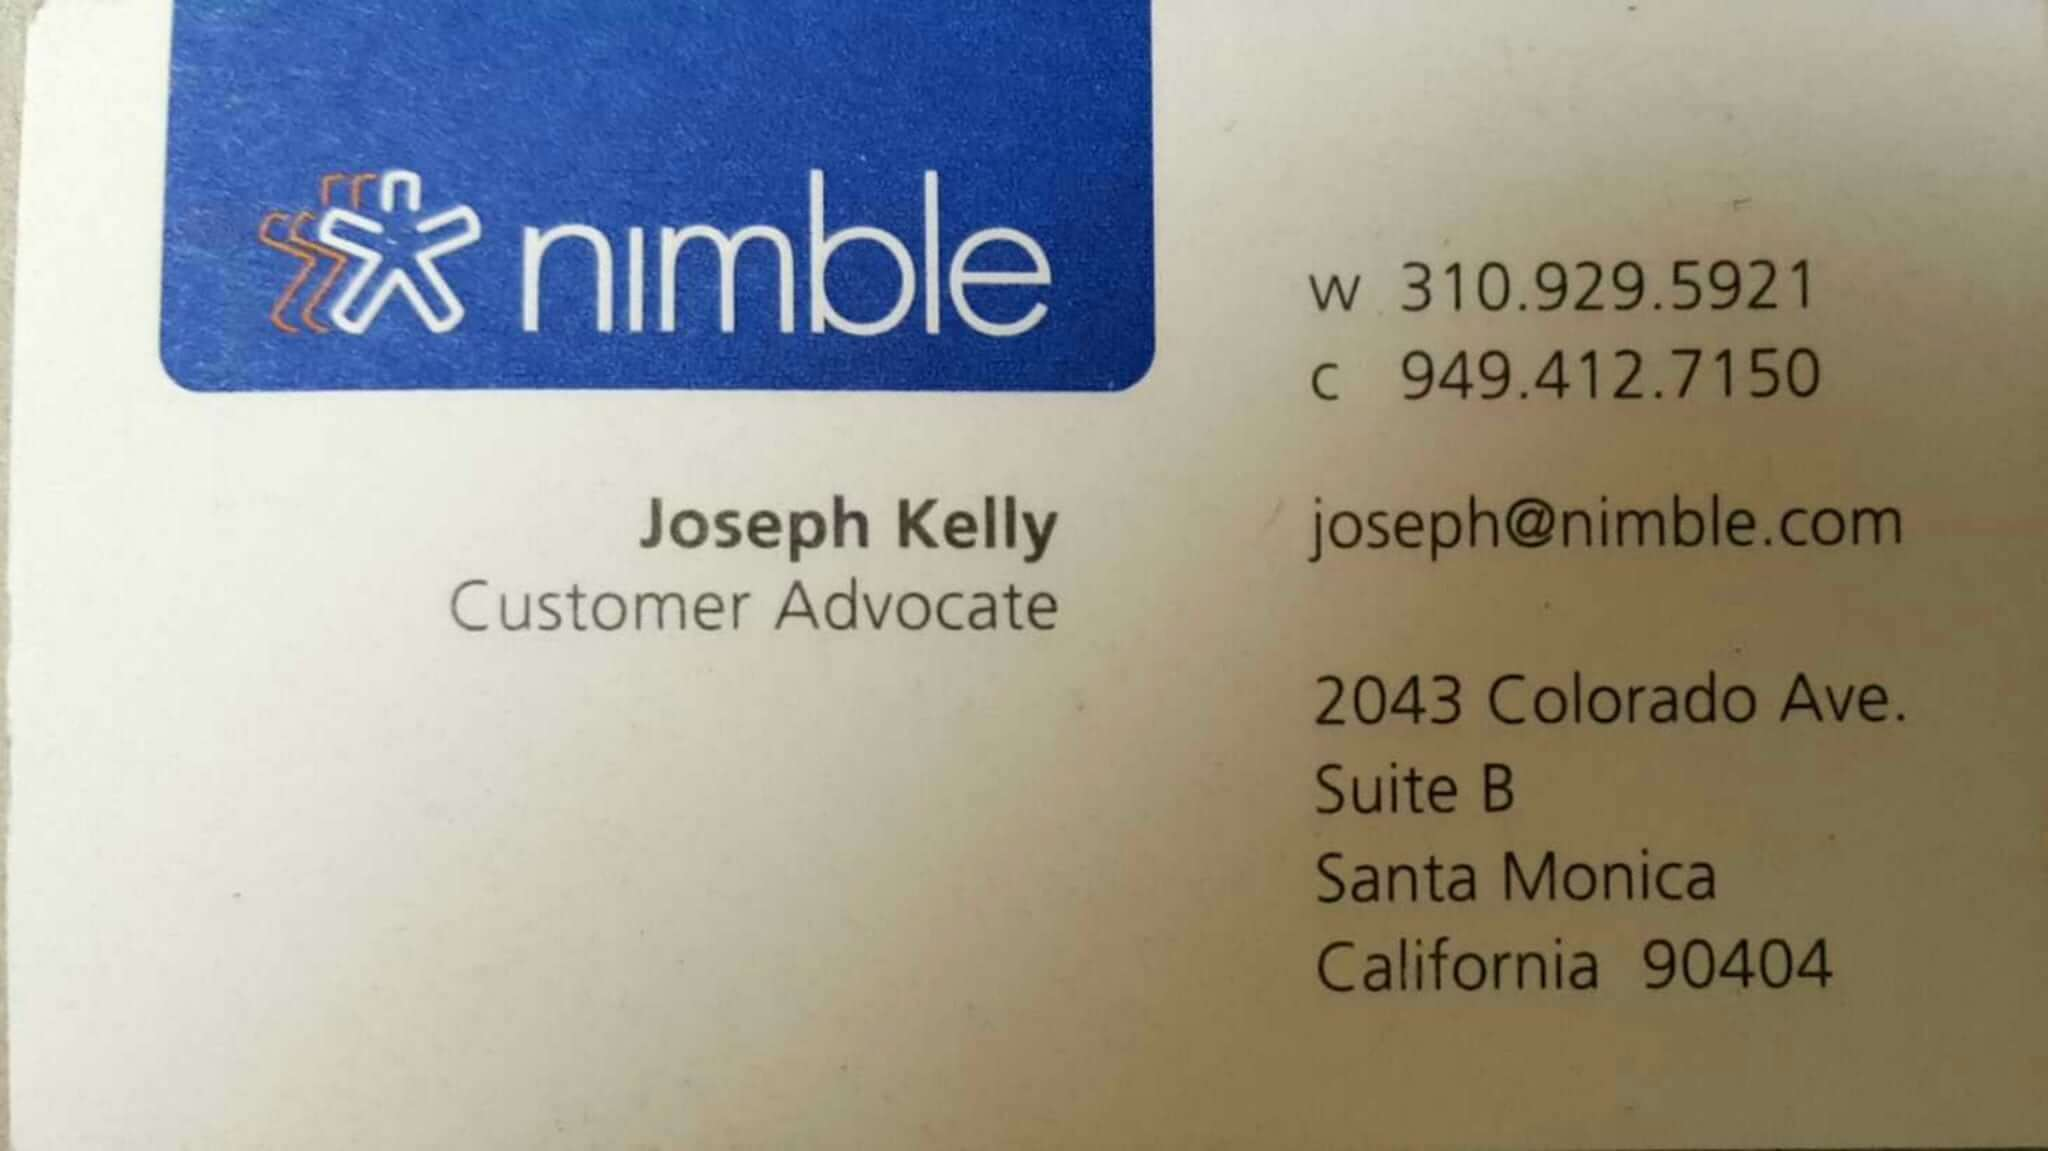 Nimble CRM Business Card Scanner for Android | The Nimble Blog